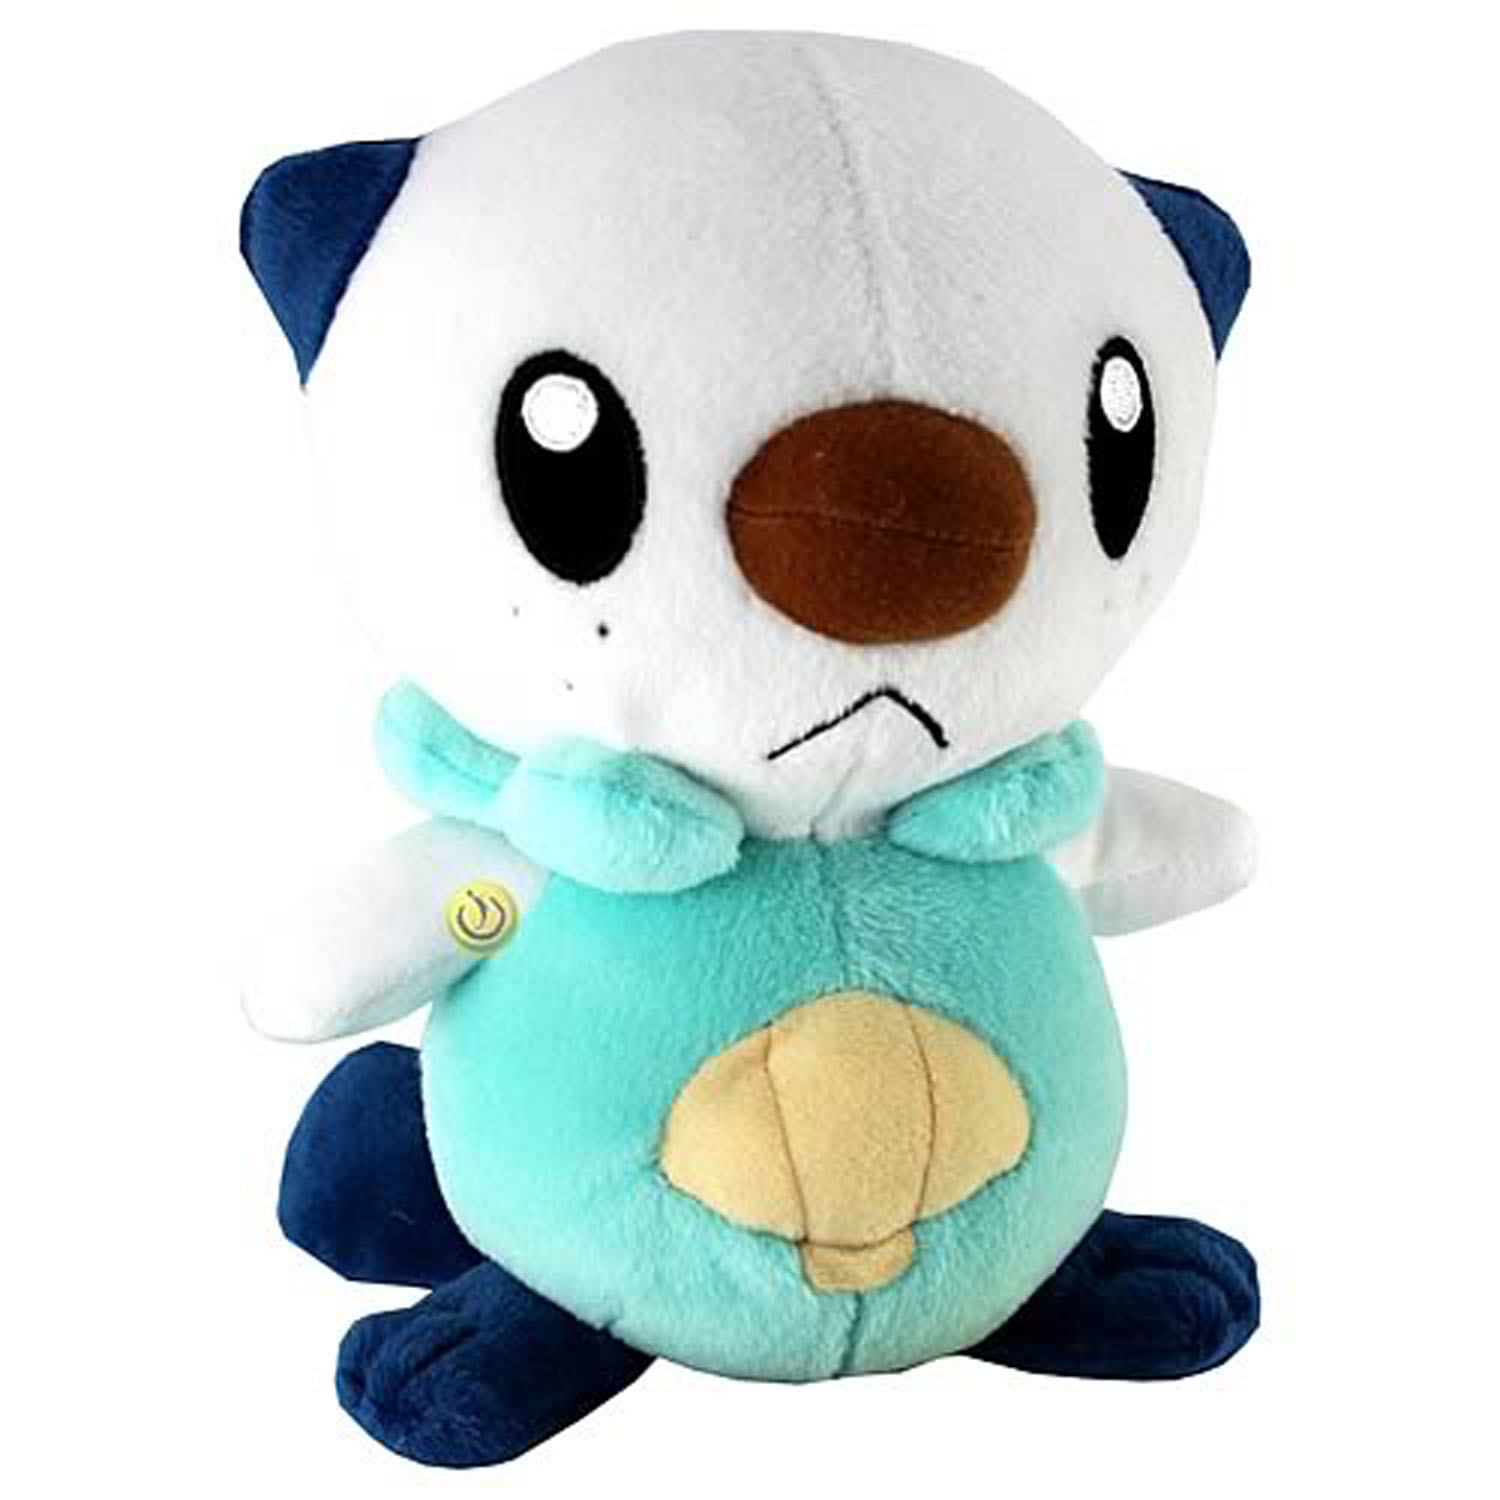 Keep oshawott in your arms while you dream this cuddly plush pokemon